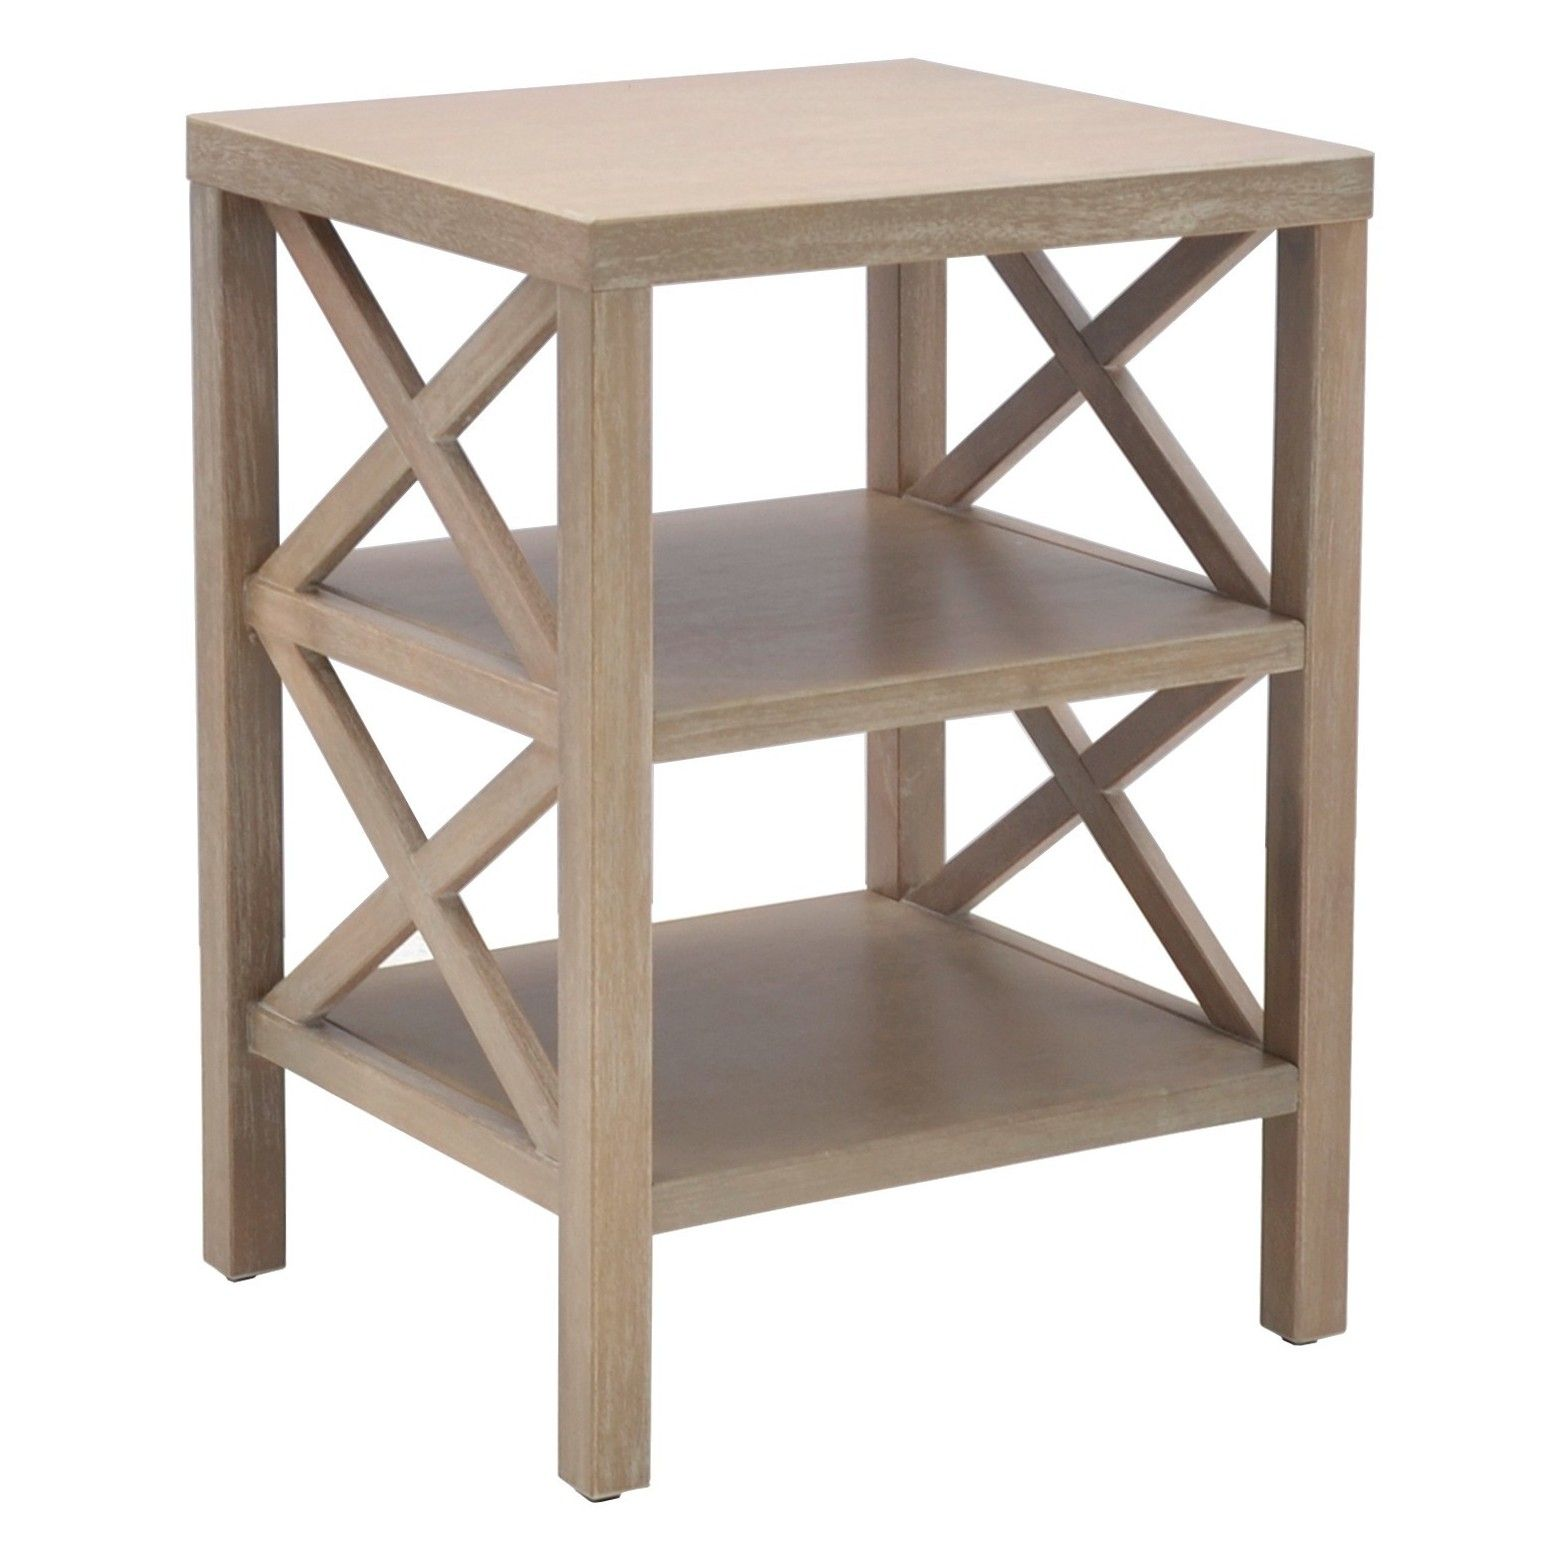 the owings end table with shelves from threshold has accent target peekaboo room essentials white tile floor long narrow desk antique coffee set drum seat distressed blue console